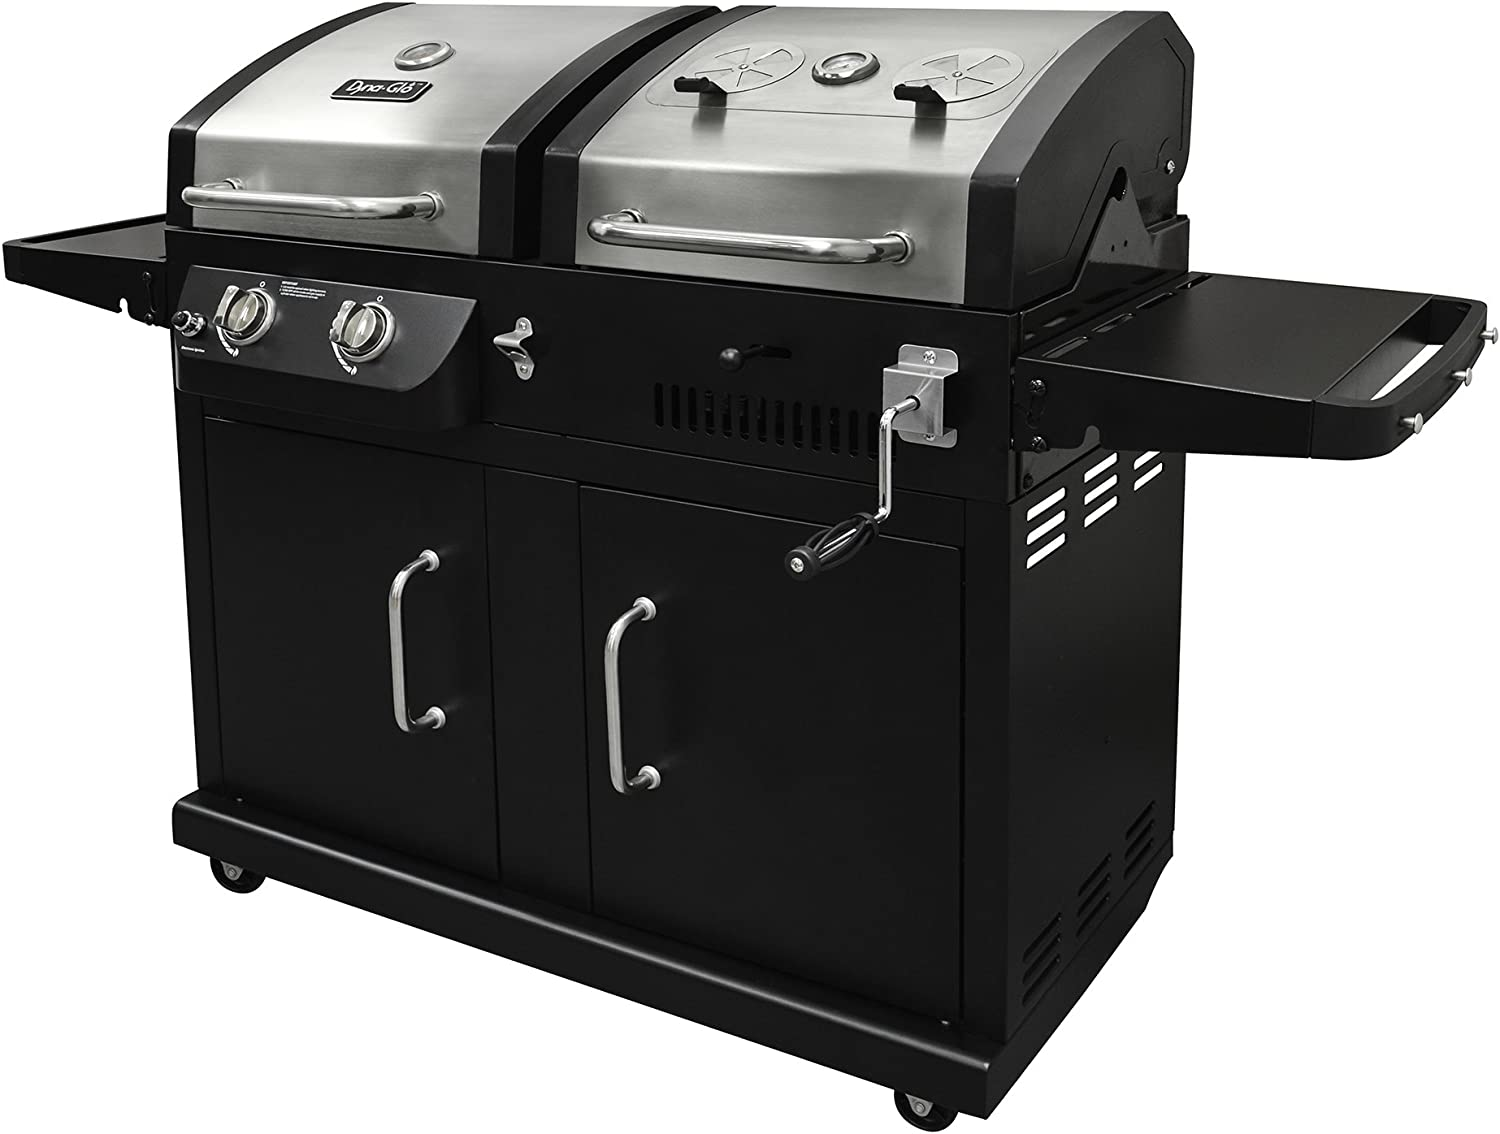 What is the best gas and charcoal combo grill?